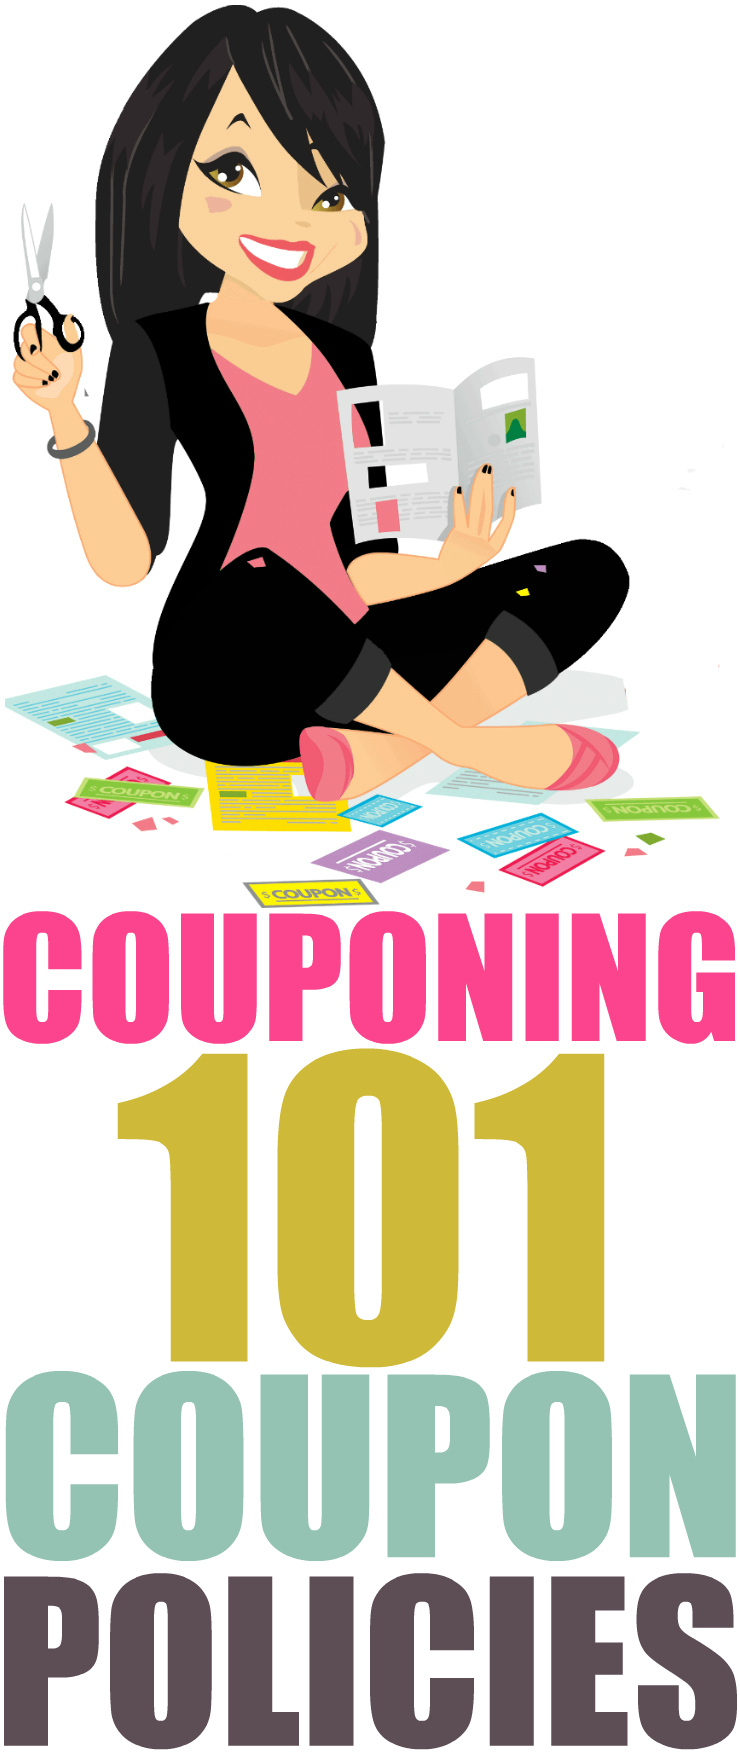 Couponing 101 Canadian Coupon Policies